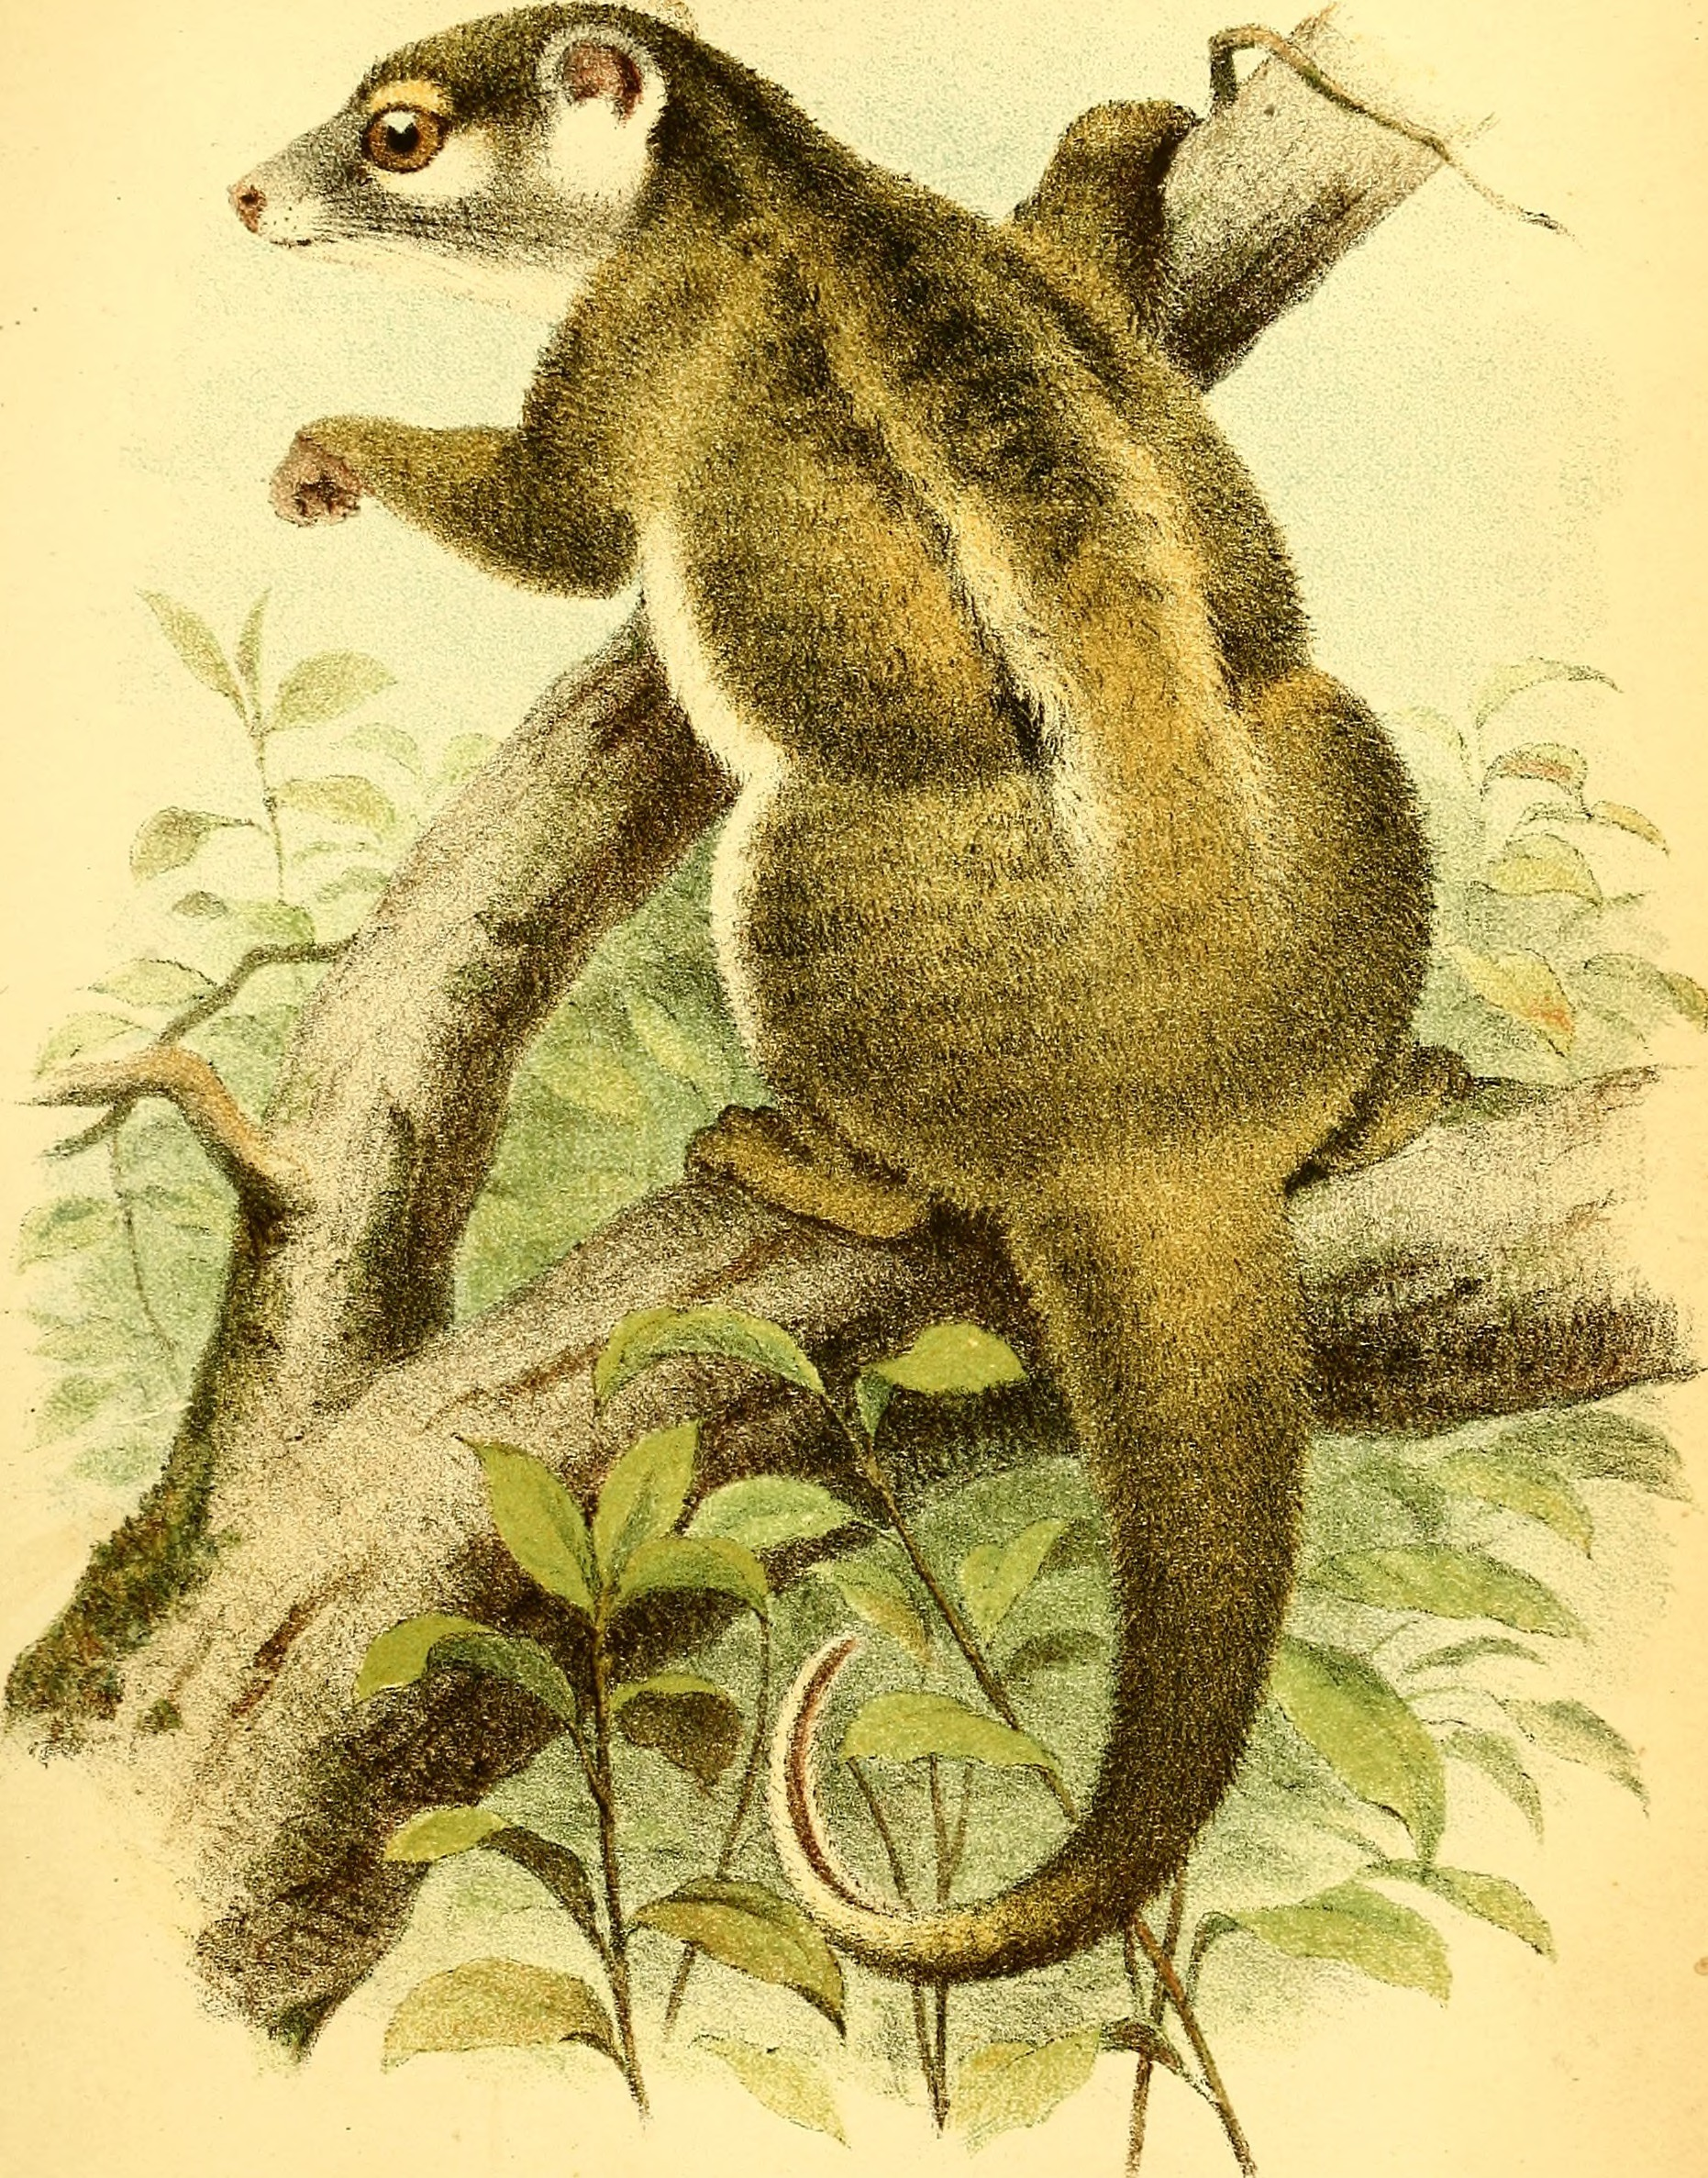 Image of Green Ringtail Possum